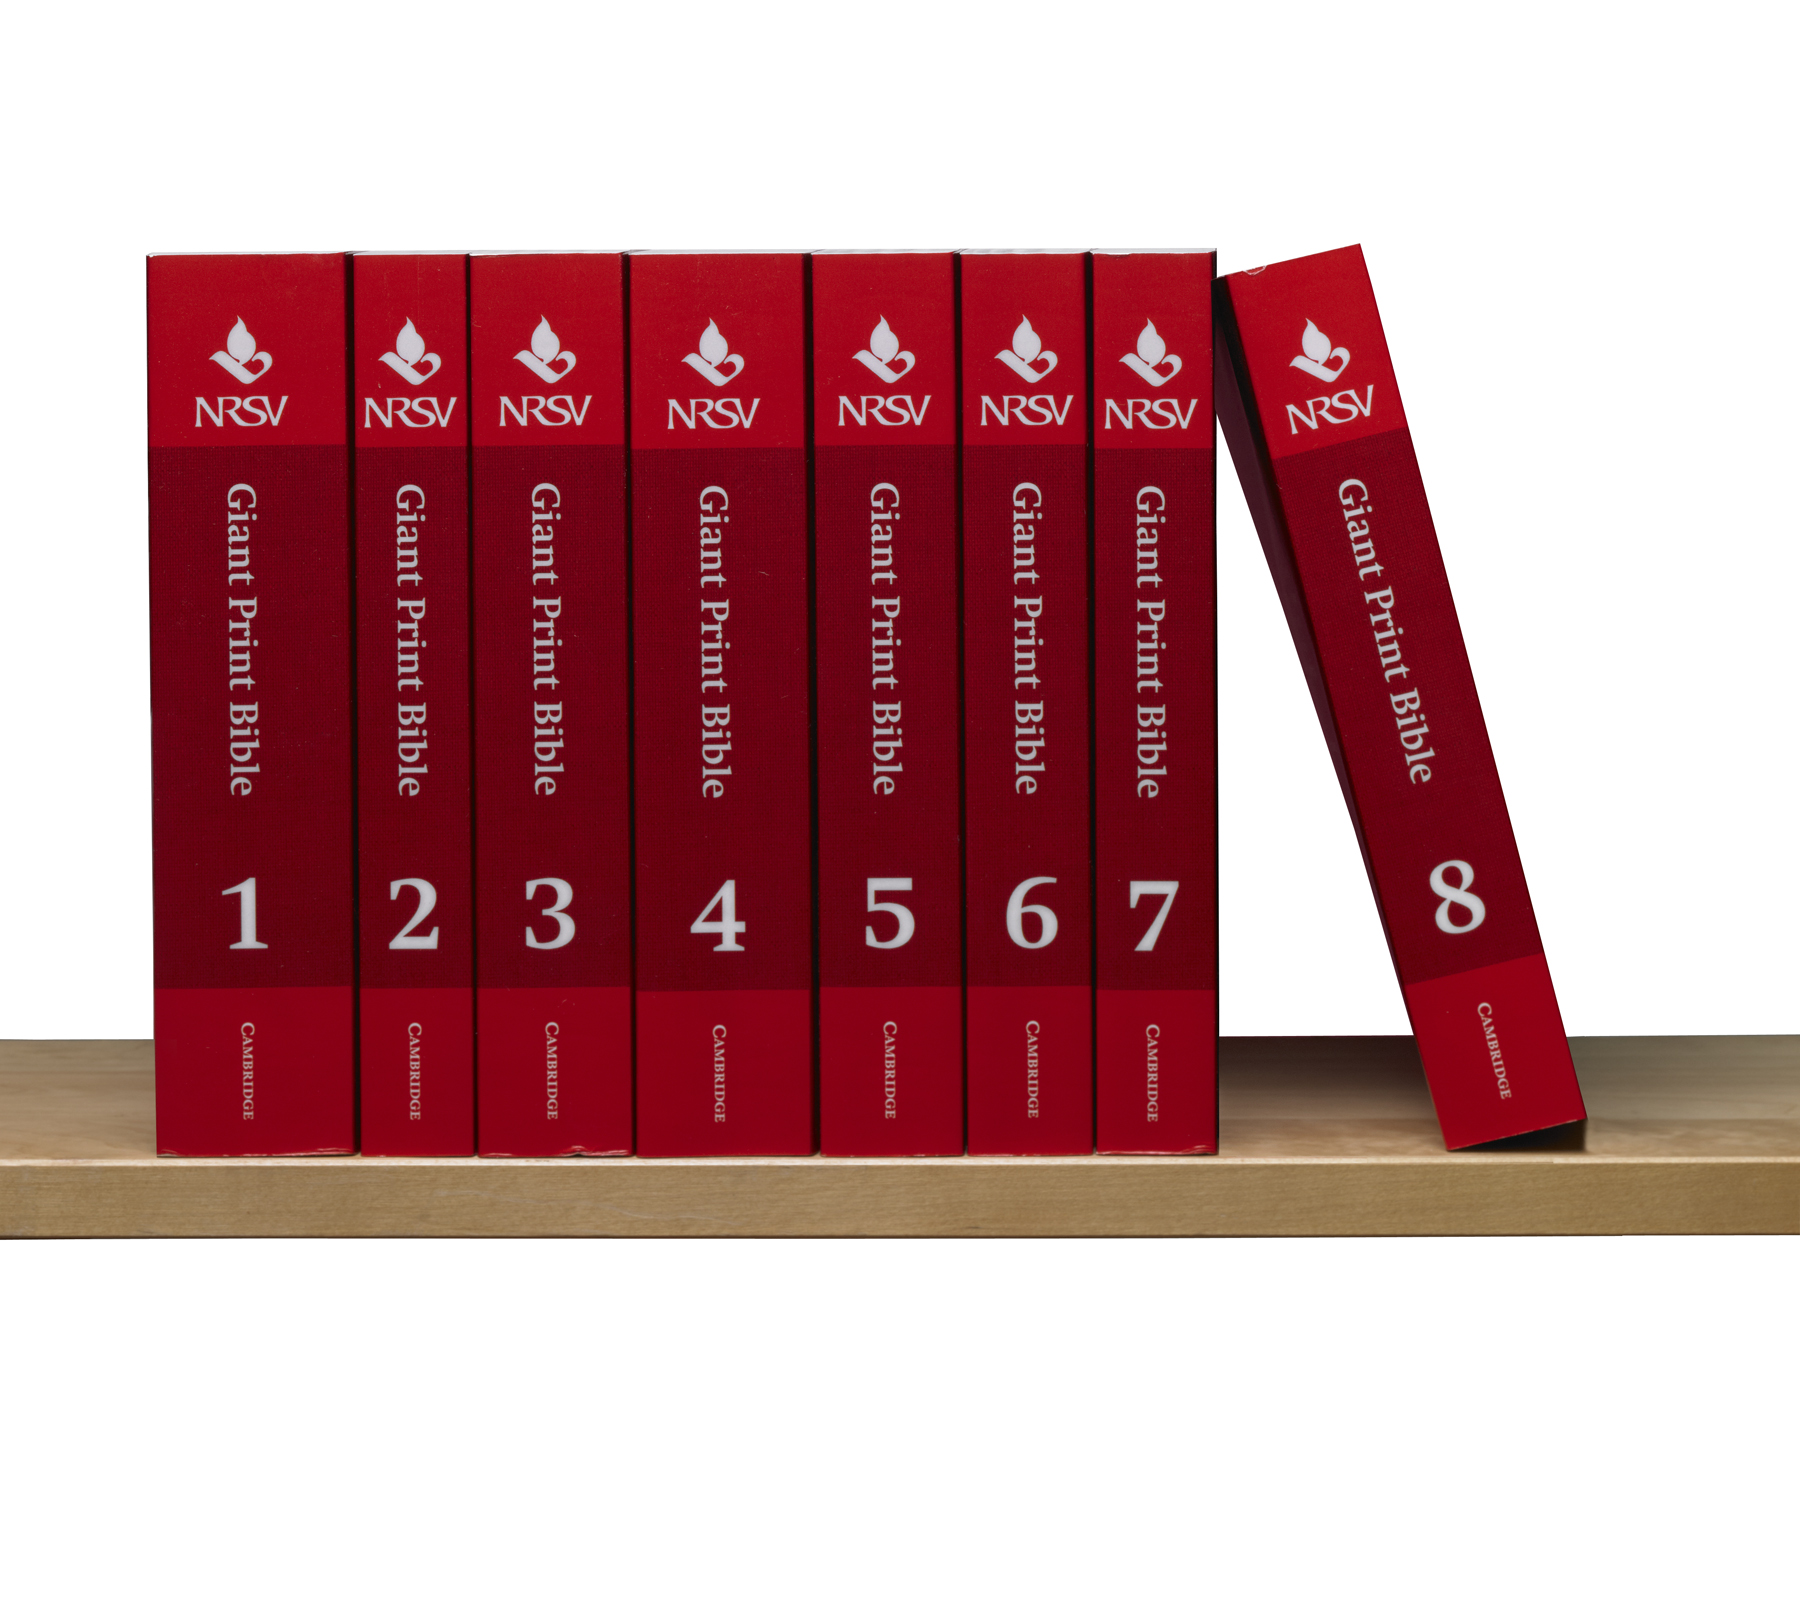 set of 8 red books constituting the NRSV Giant-Print Edition